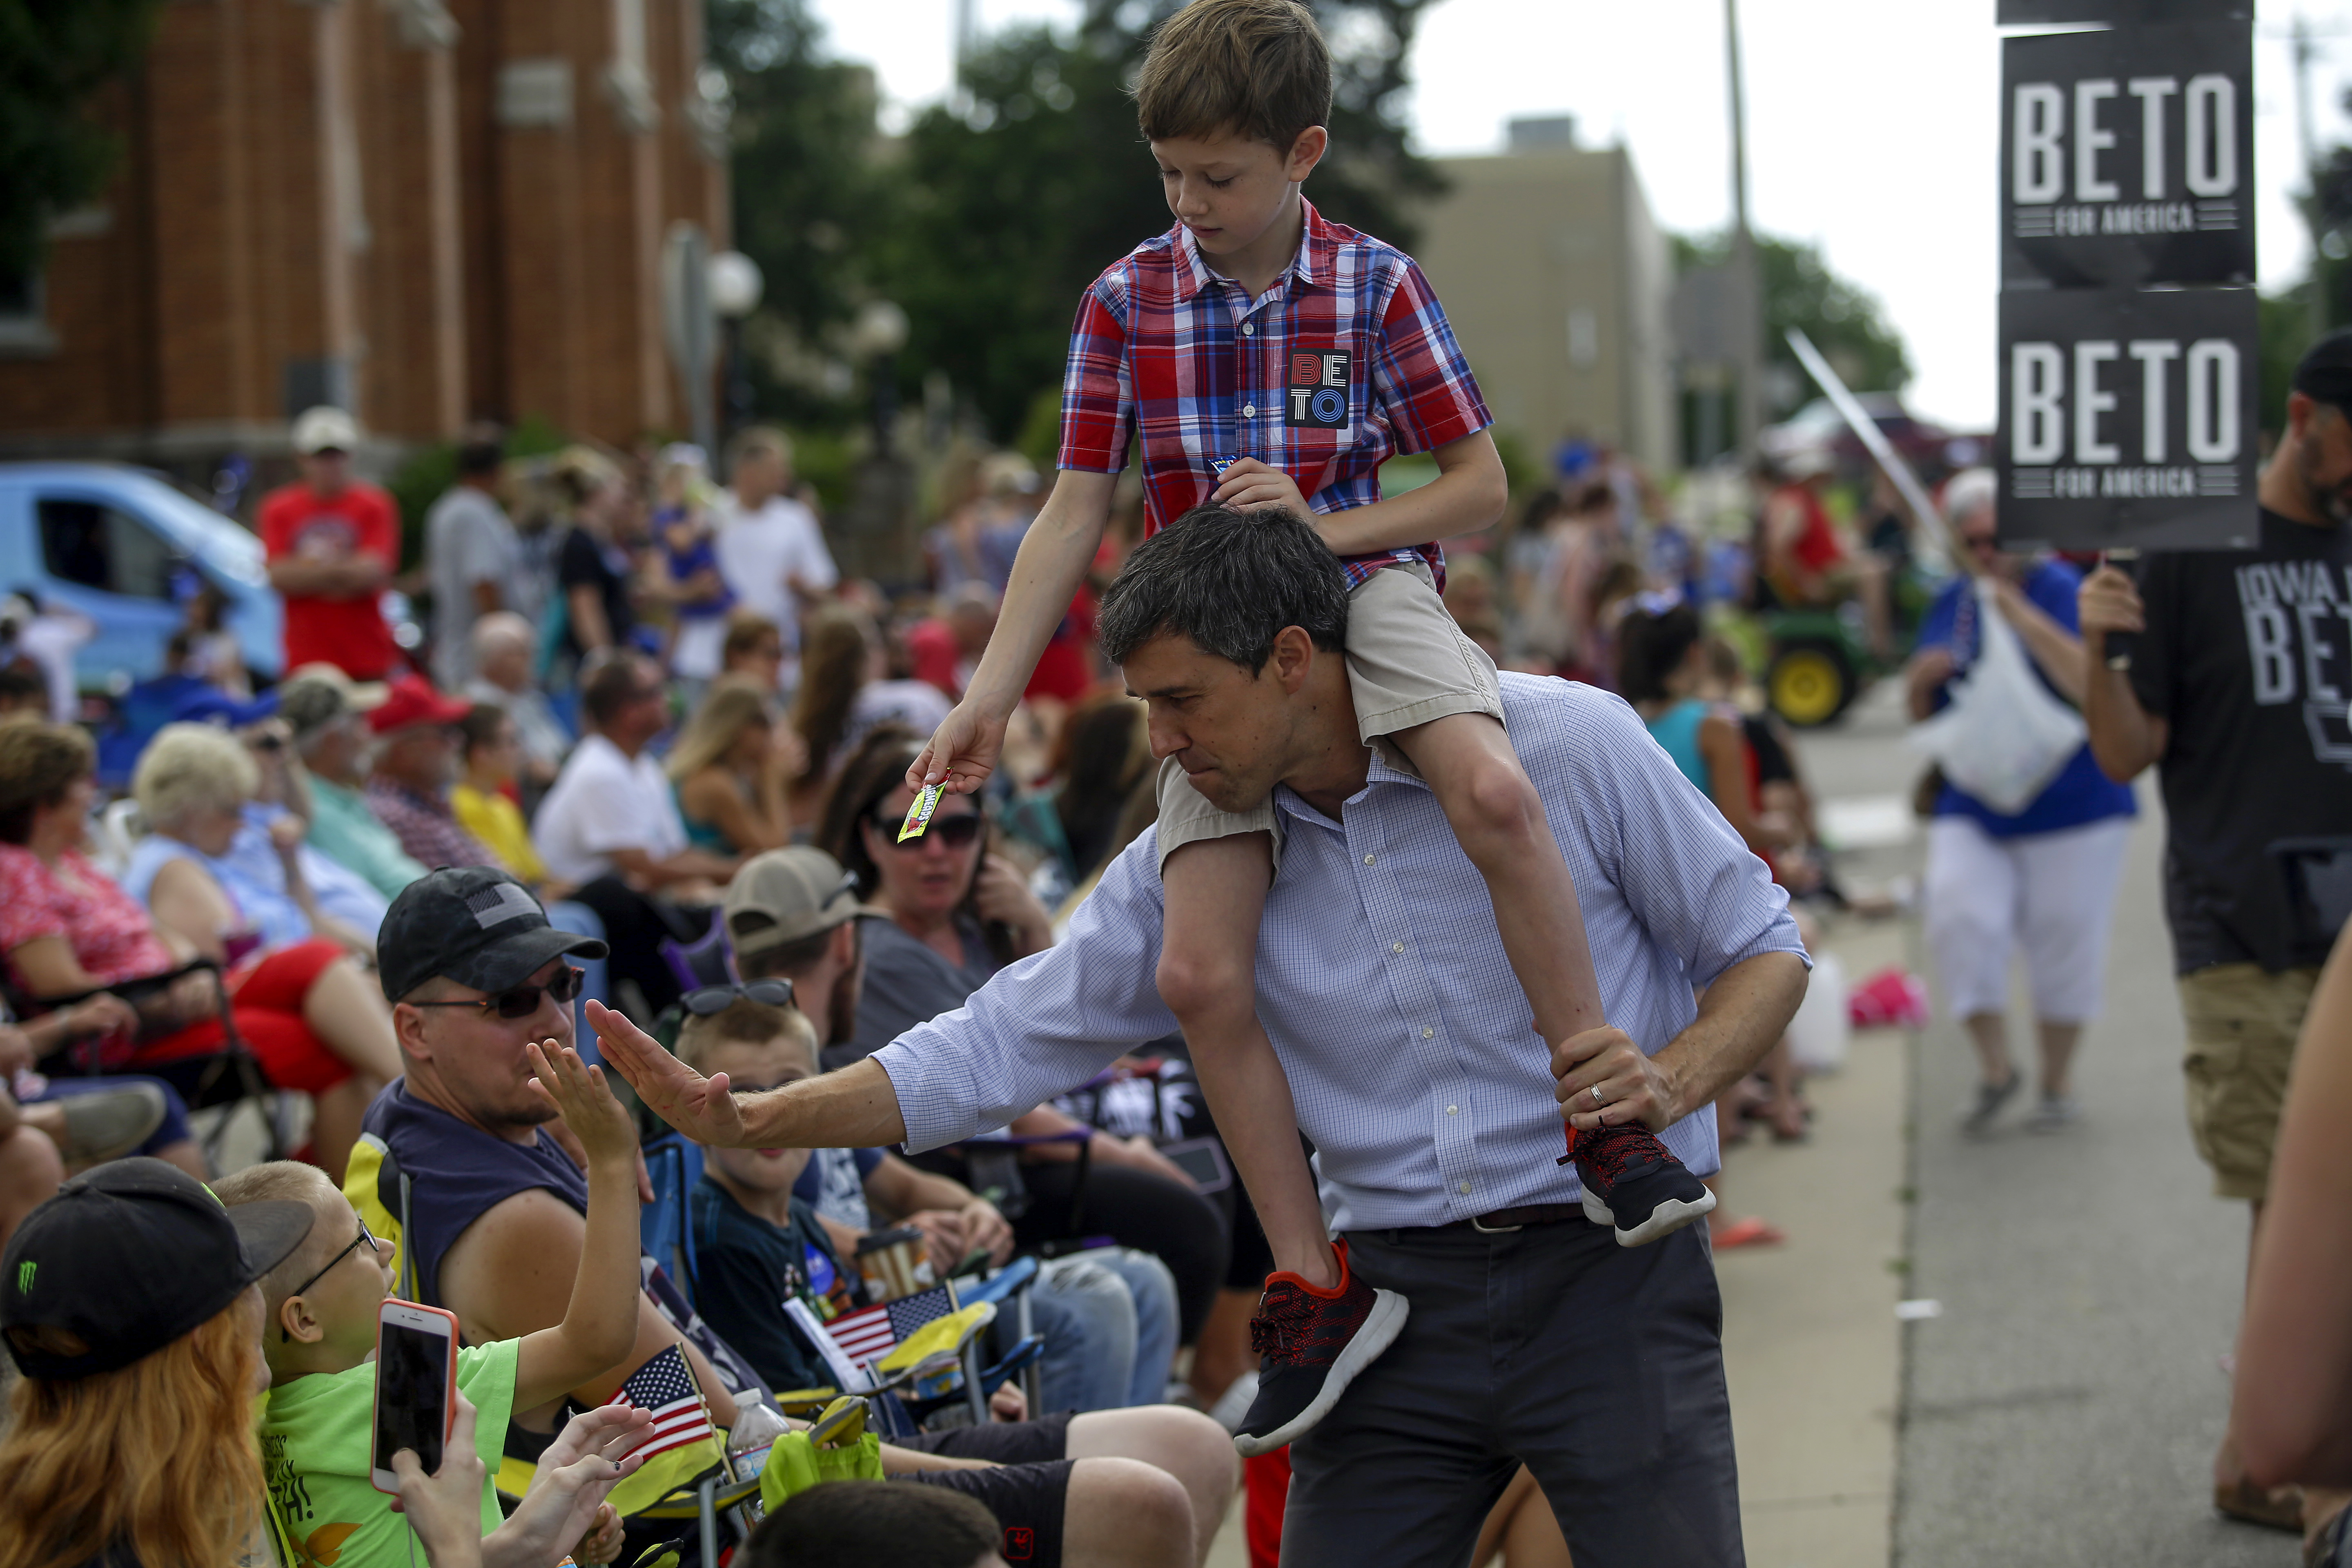 INDEPENDENCE, IA - JULY 04: Democratic presidential candidate, former Rep. Beto O'Rourke (D-TX) and his son Henry O'Rourke greet people during the Fourth of July parade on July 4, 2019 in Independence, Iowa. Democratic candidates for president including Joe Biden, Beto O'Rourke, Kamala Harris, Pete Buttigieg and Bernie Sanders are celebrating America's independence in Iowa. (Photo by Joshua Lott/Getty Images)